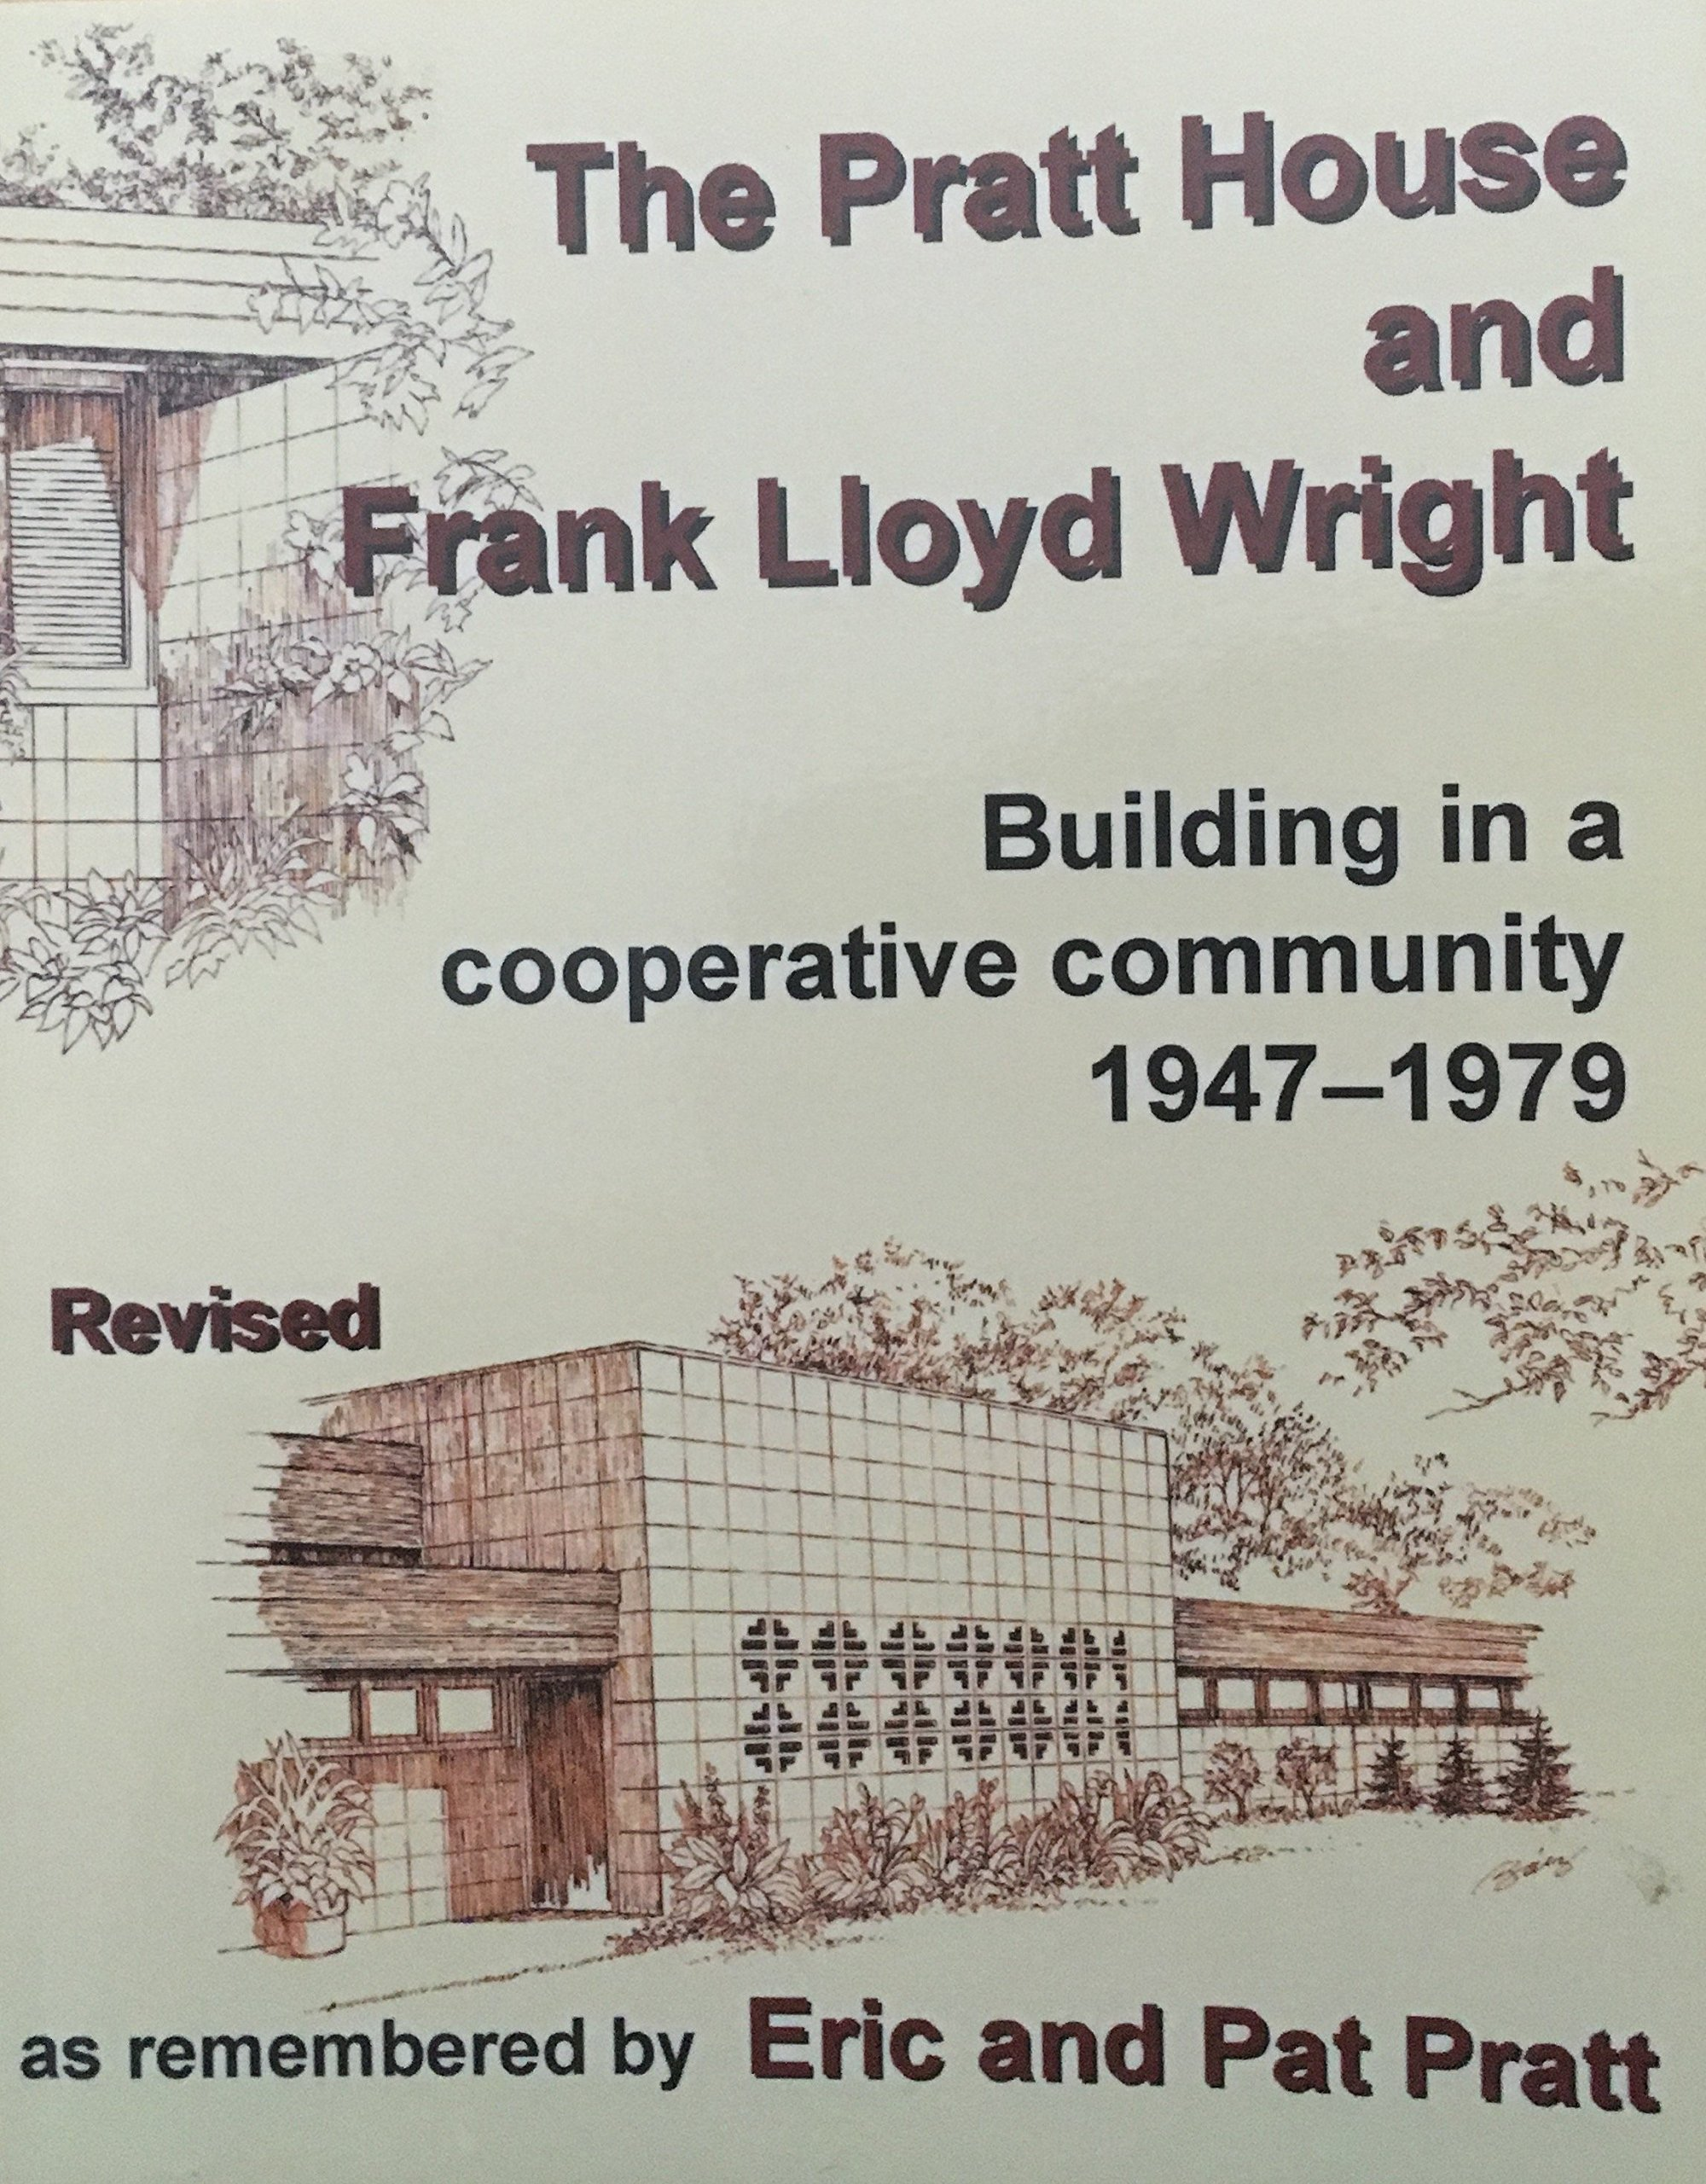 Download The Pratt House and Frank Lloyd Wright : Building in a Copperative Community 1947-1979 Paperback SIGNED pdf